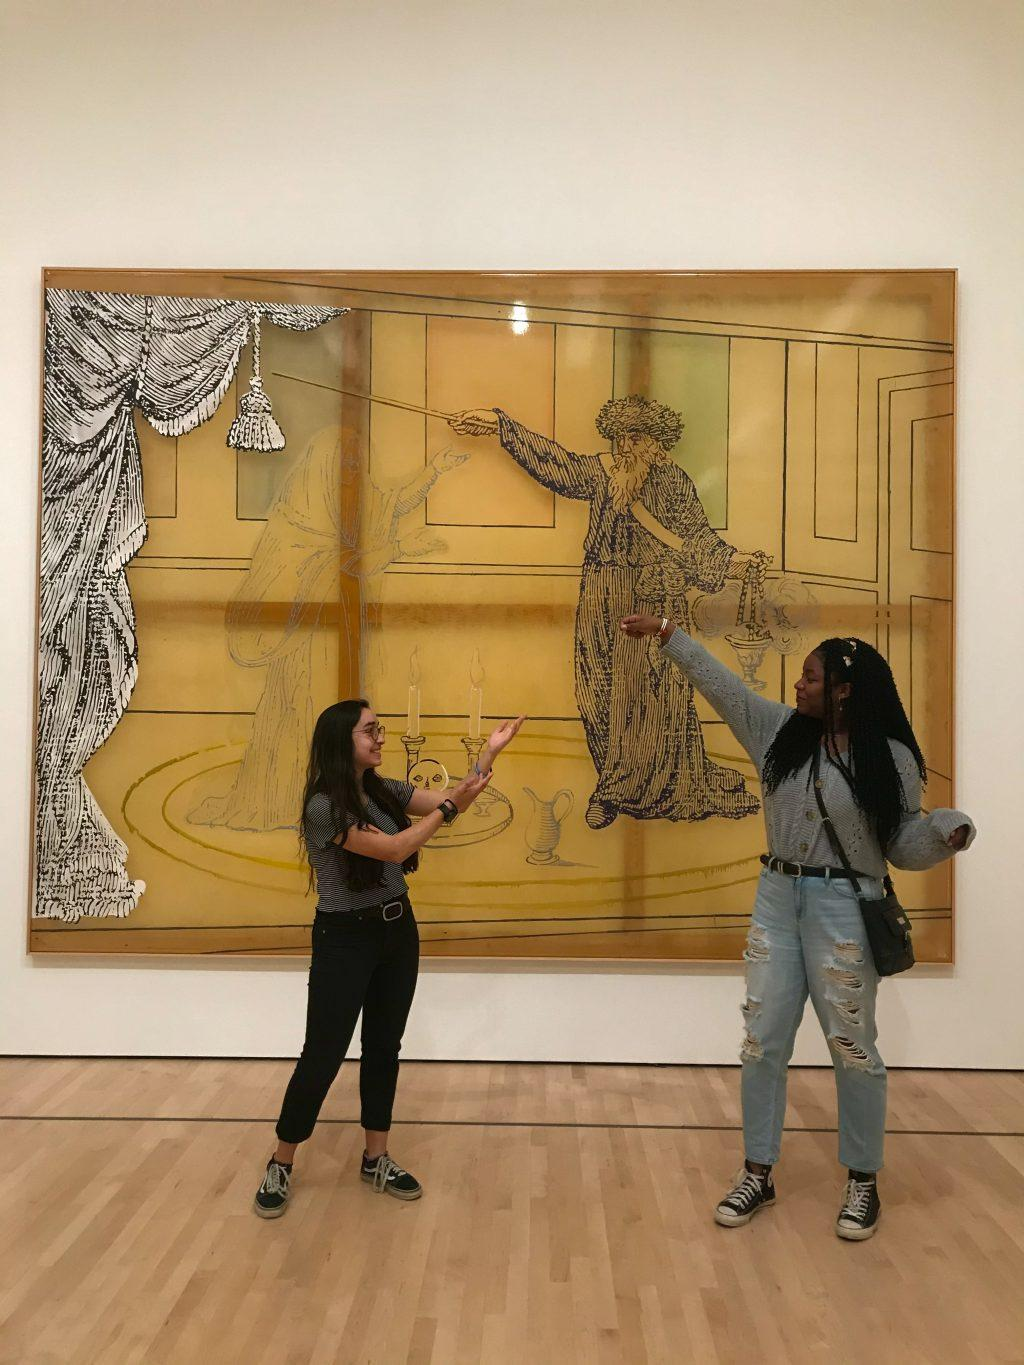 Djobaih (right) and her best friend imitate a piece of art during a field trip at the San Francisco Museum of Modern Art in February. Djobaih said she chose to attend Pepperdine because of the Christian community and beautiful campus.